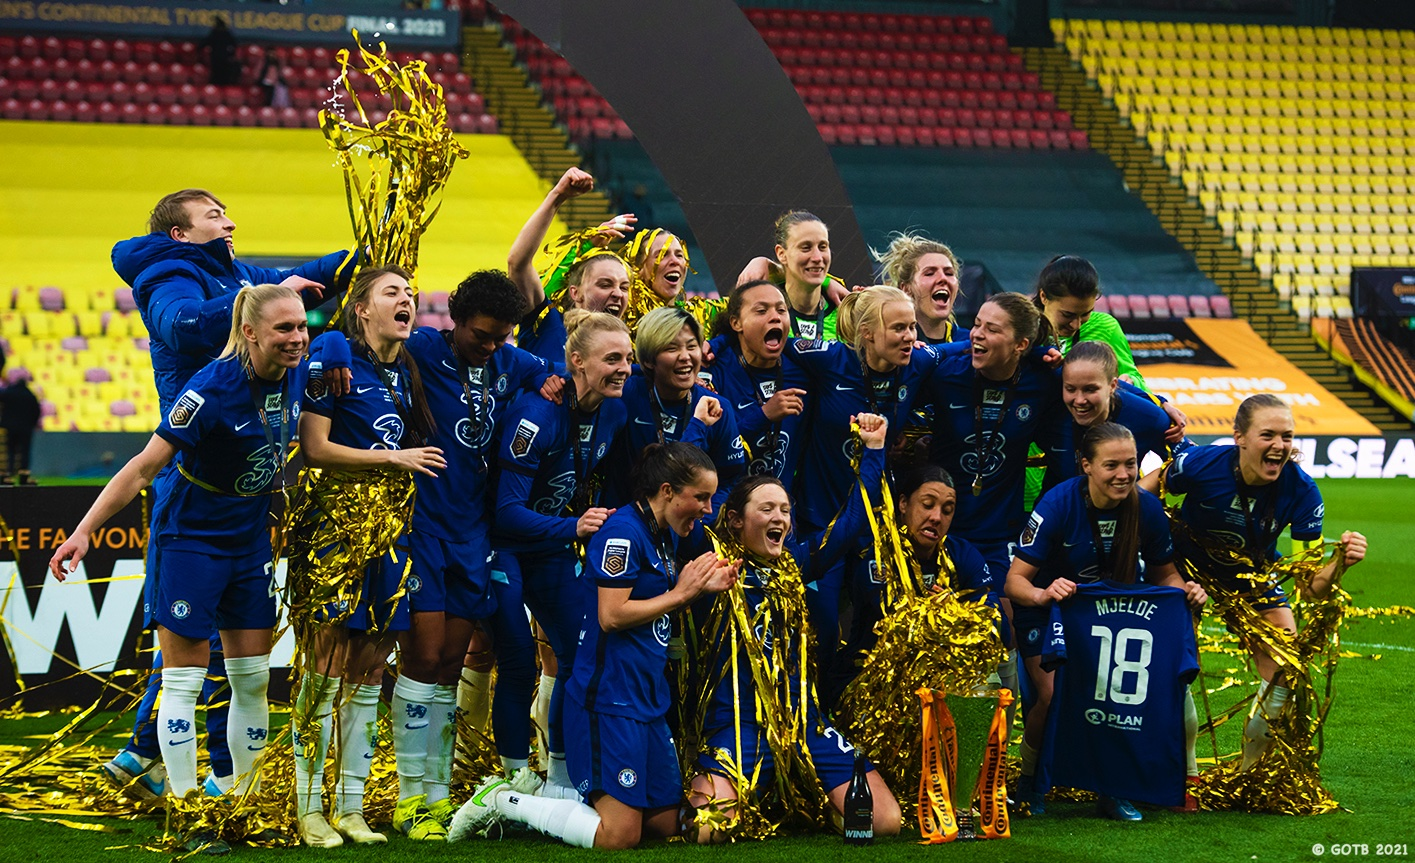 Chelsea, Continental Cup Final 2021